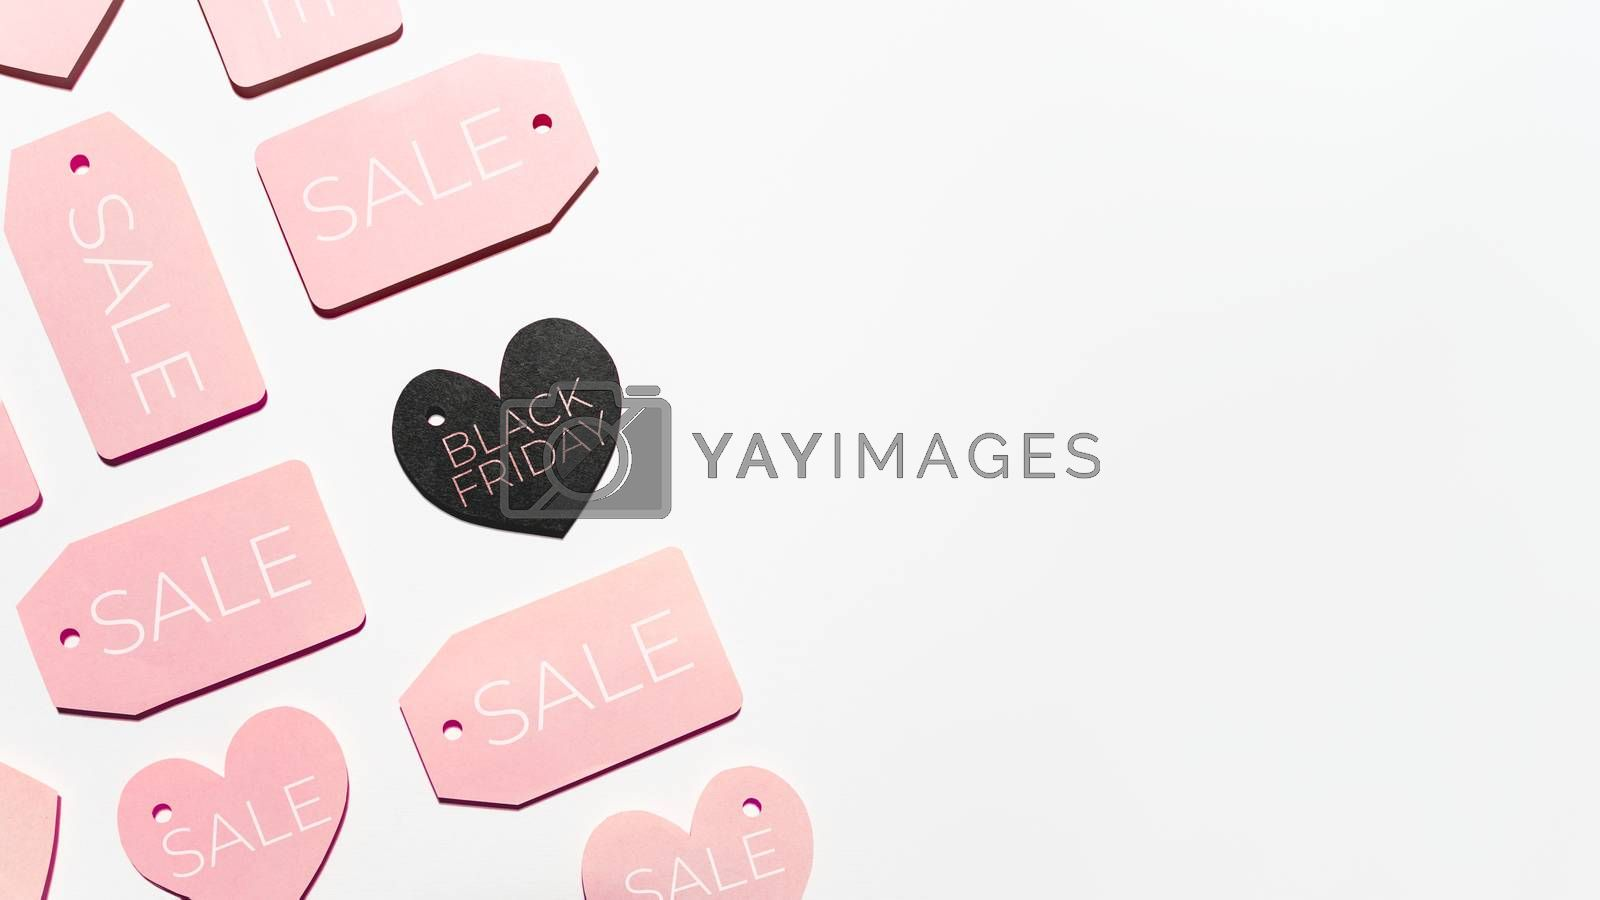 Top view on pattern of pink and black clothes tags in shape of heart on white background. Glamorous labels with copy space. Symbol of black Friday sale and shopping. Flat lay.